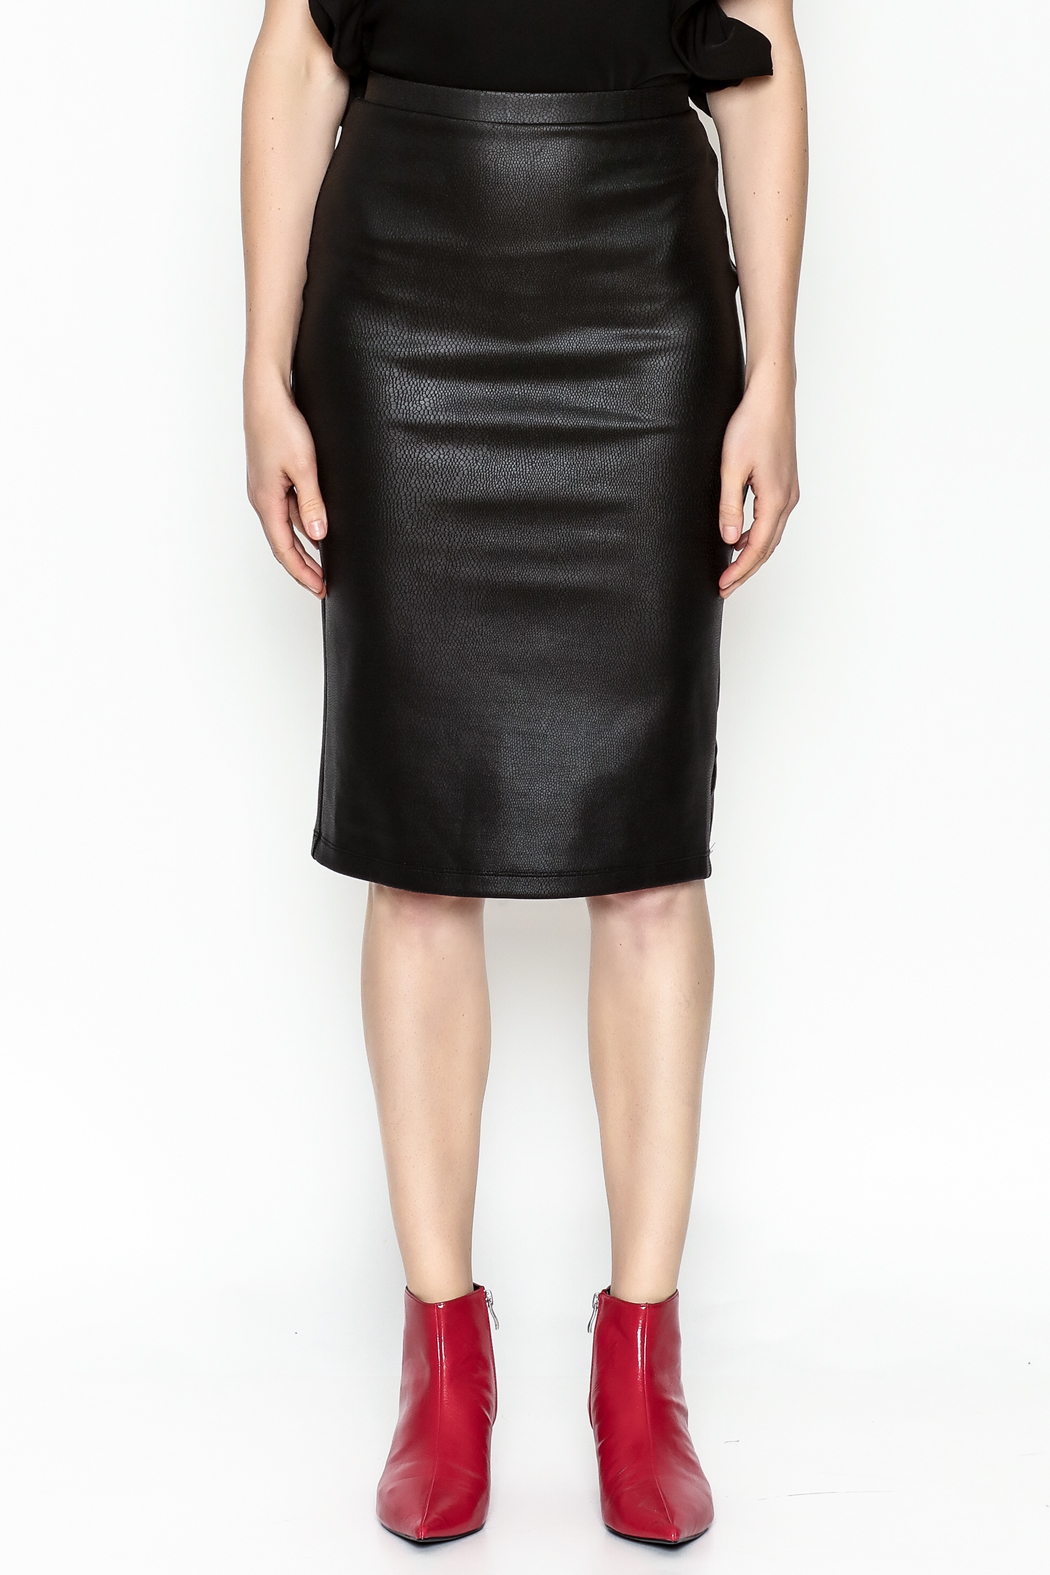 Jack by BB Dakota Chloe Snakeskin Skirt - Front Full Image